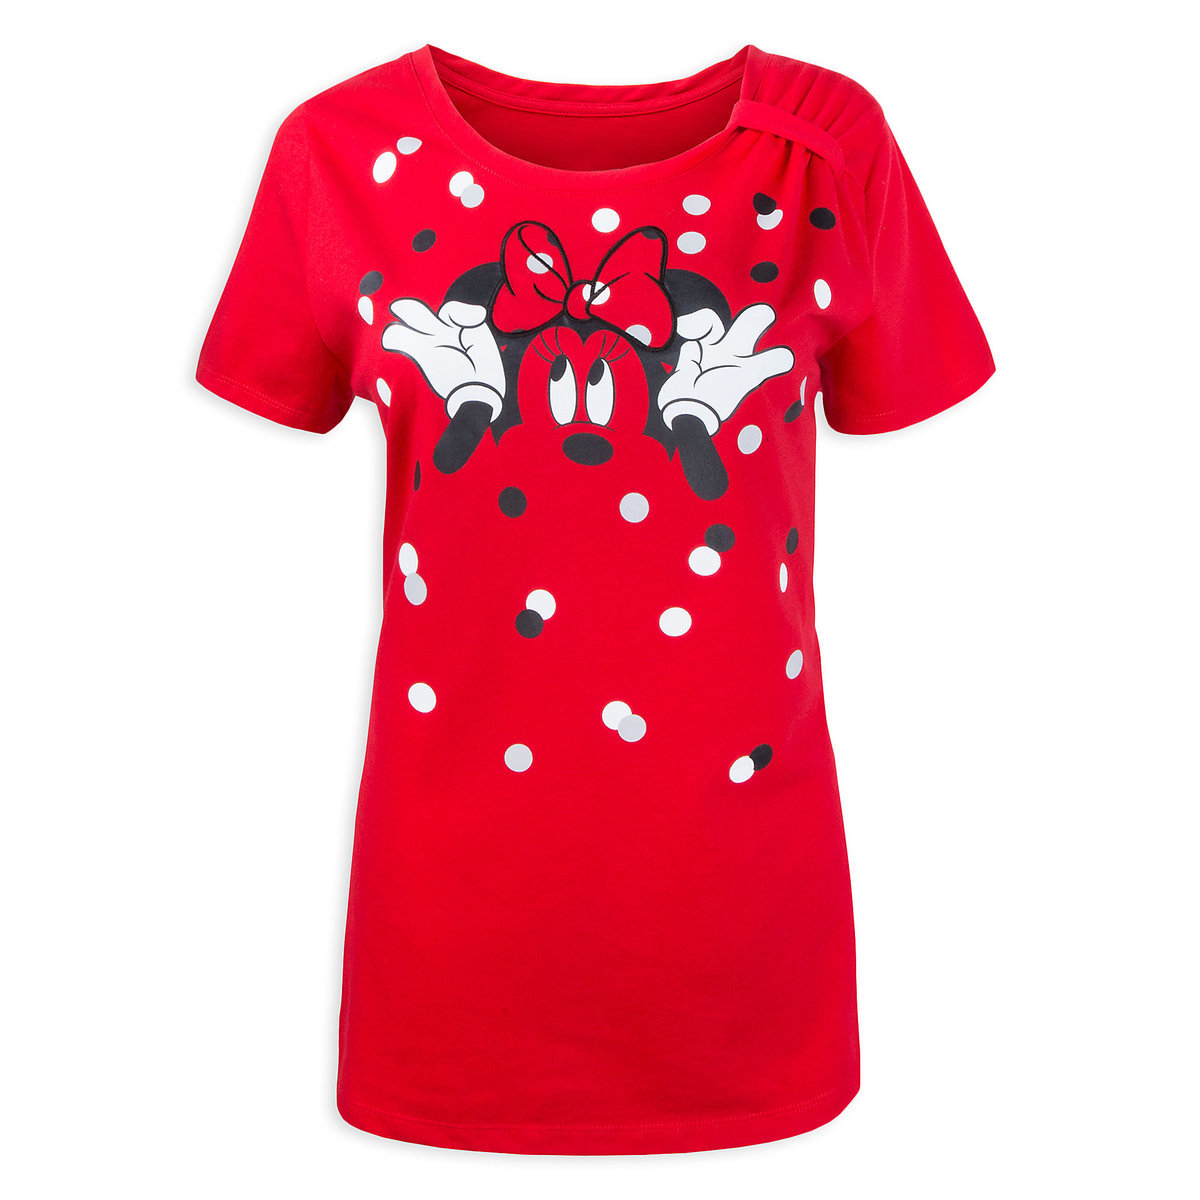 Disney Women's Shirt - Minnie Mouse Tie-Neck T-Shirt - Red